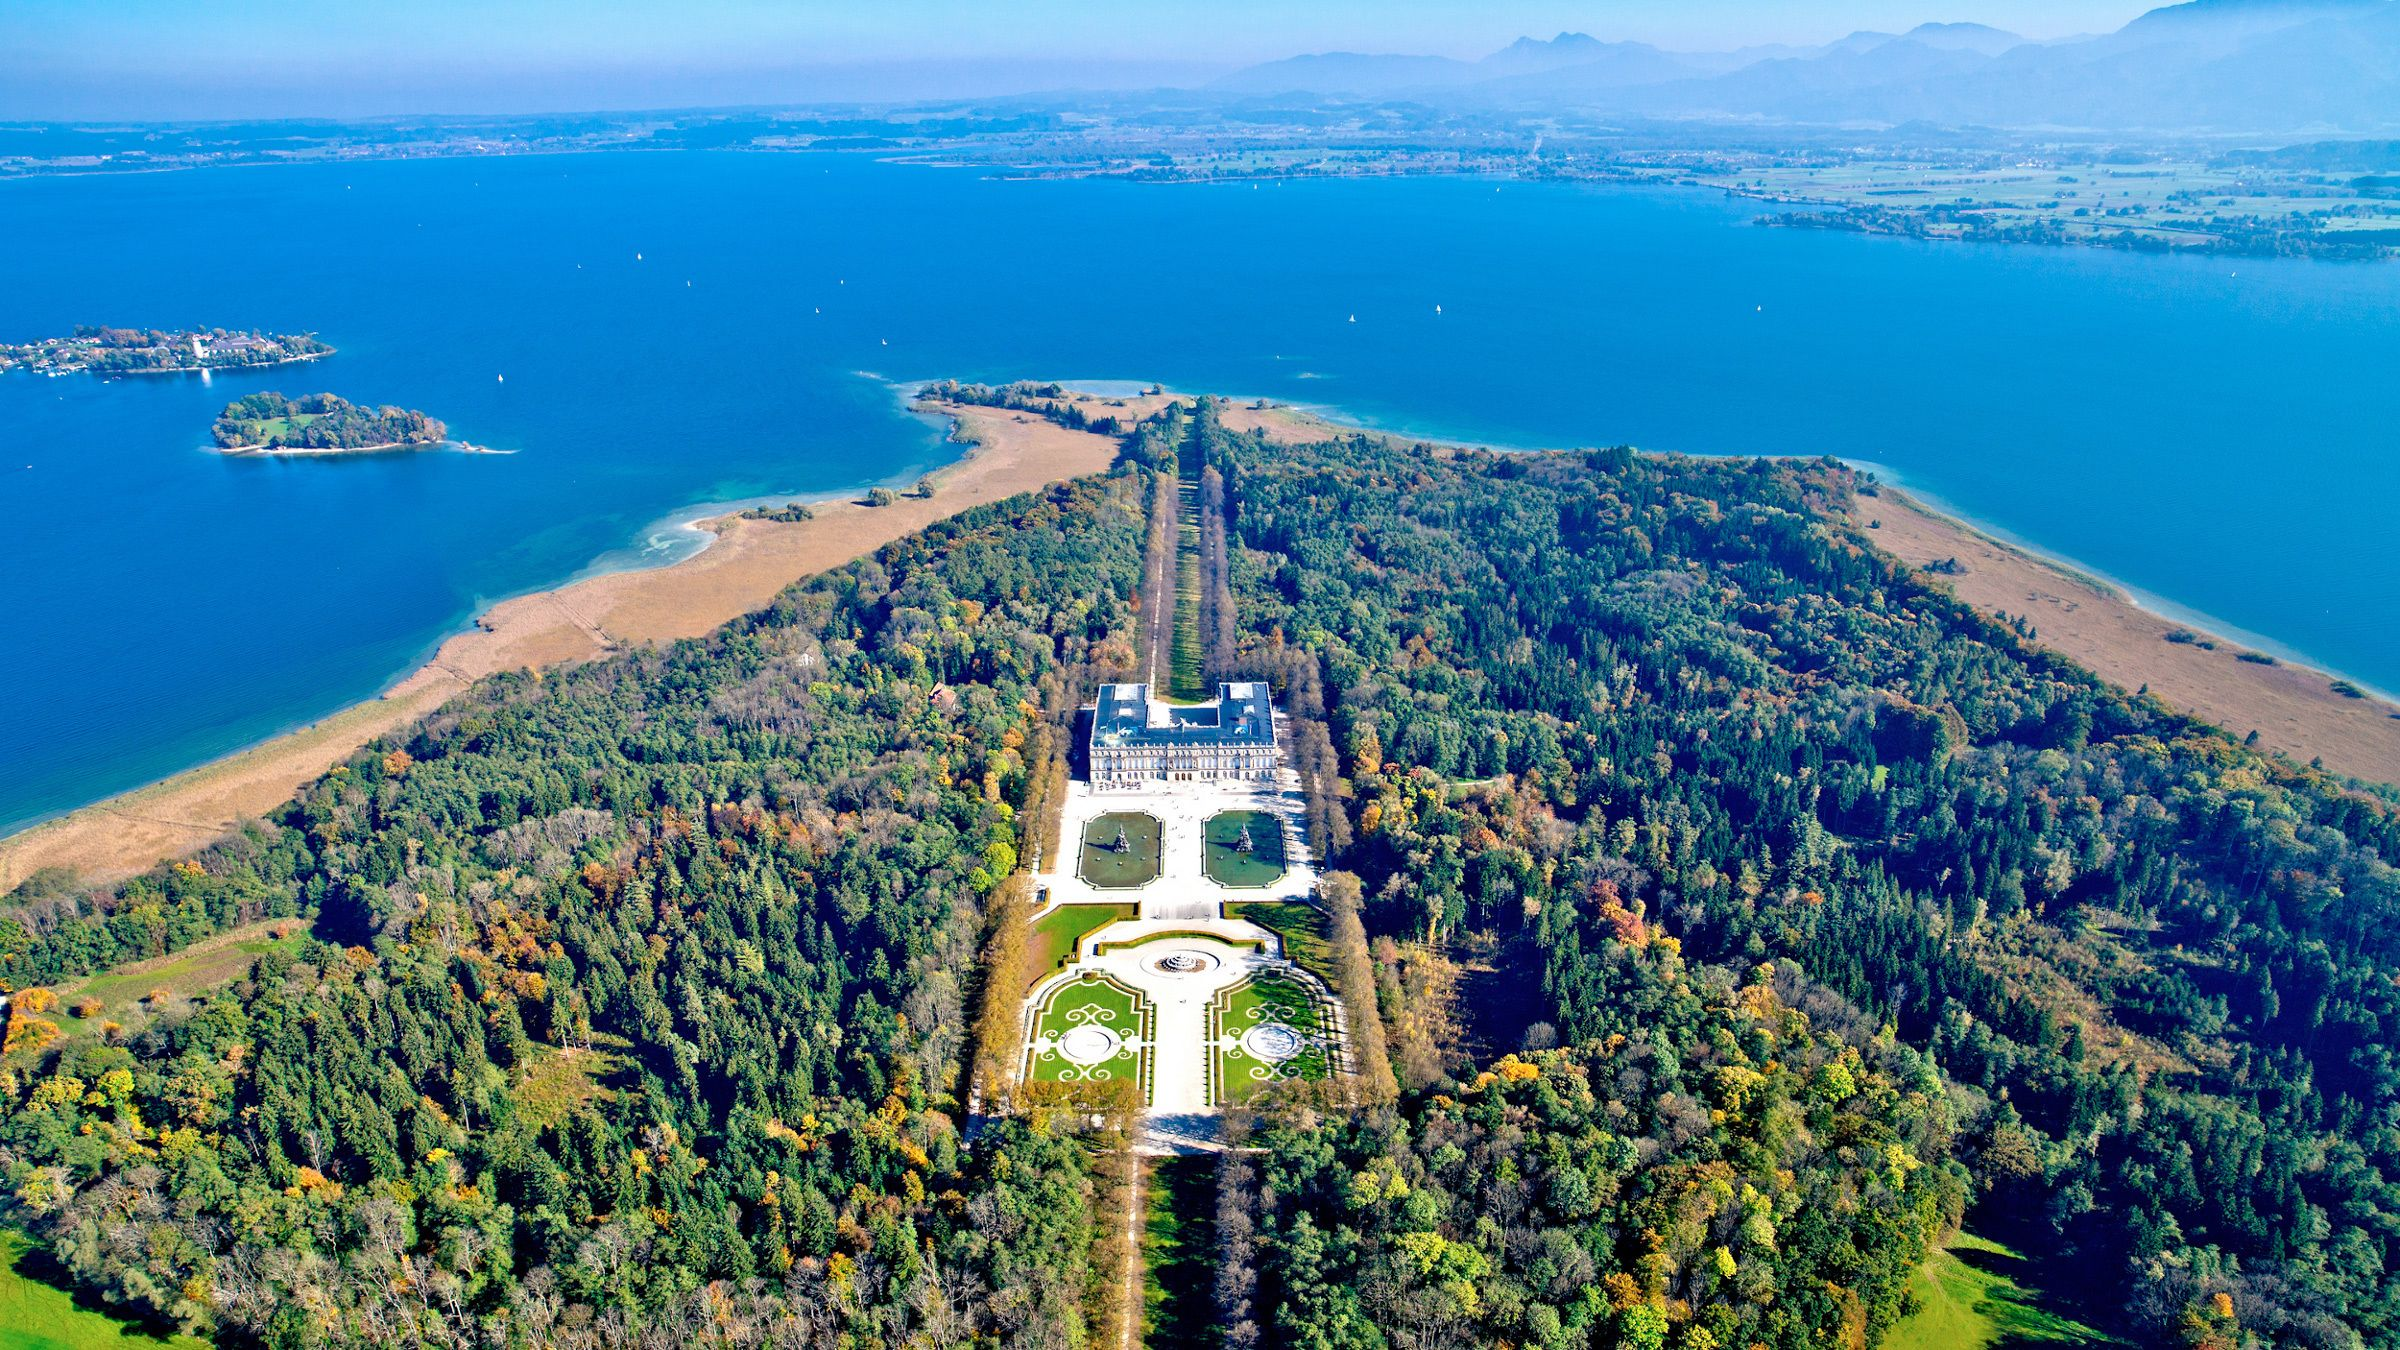 aerial view of the Herrenchiemsee Castle estate and surroundings in Germany